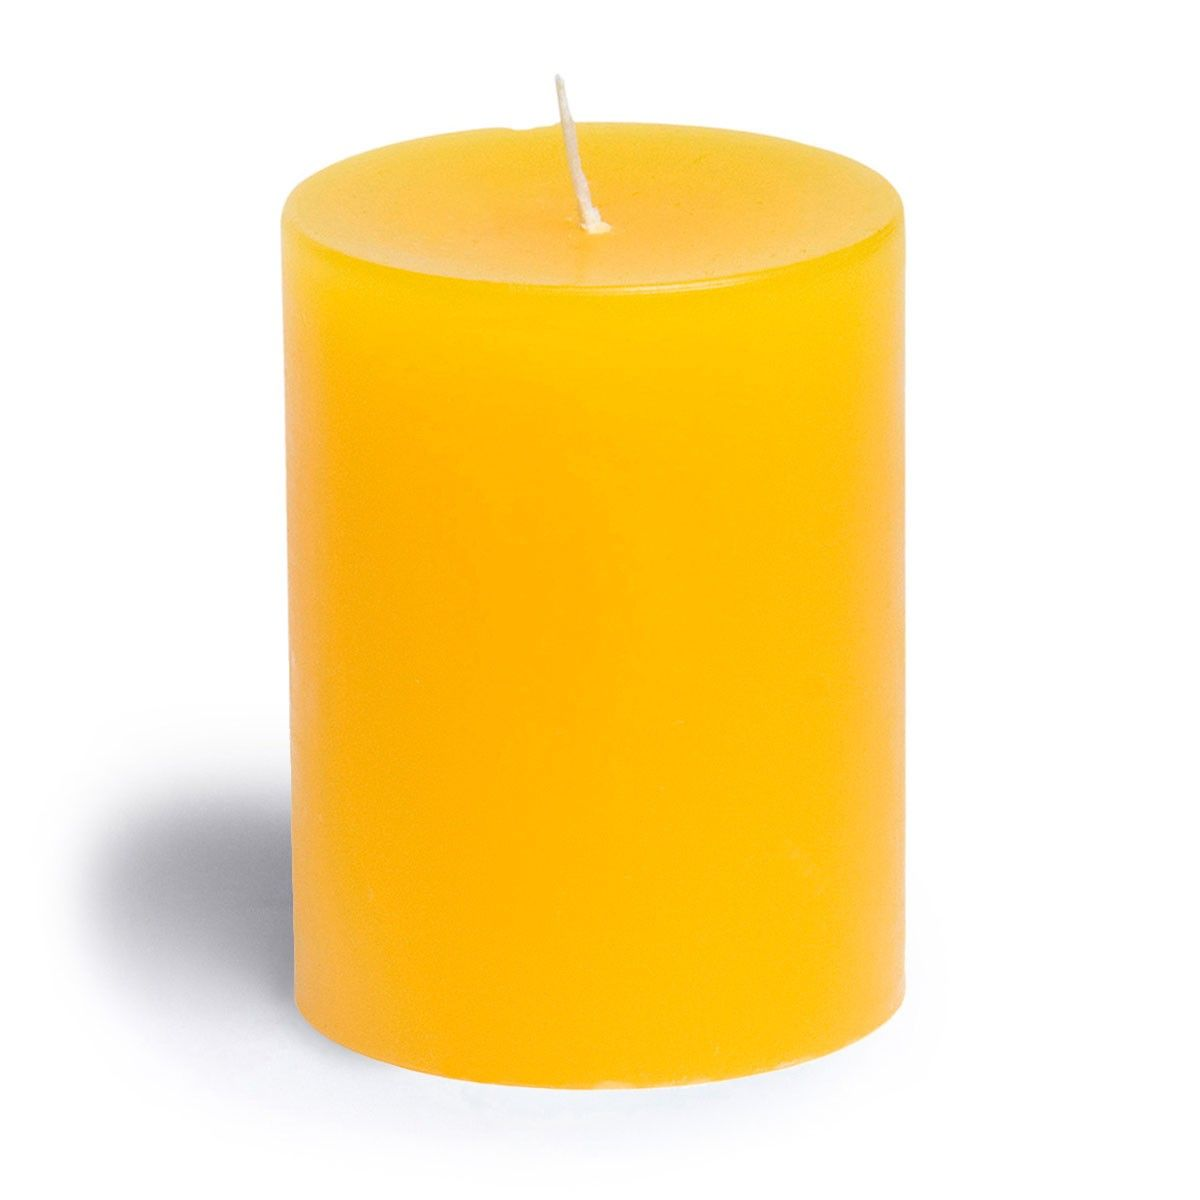 Candle yellow finnmari gift list pinterest candleholders